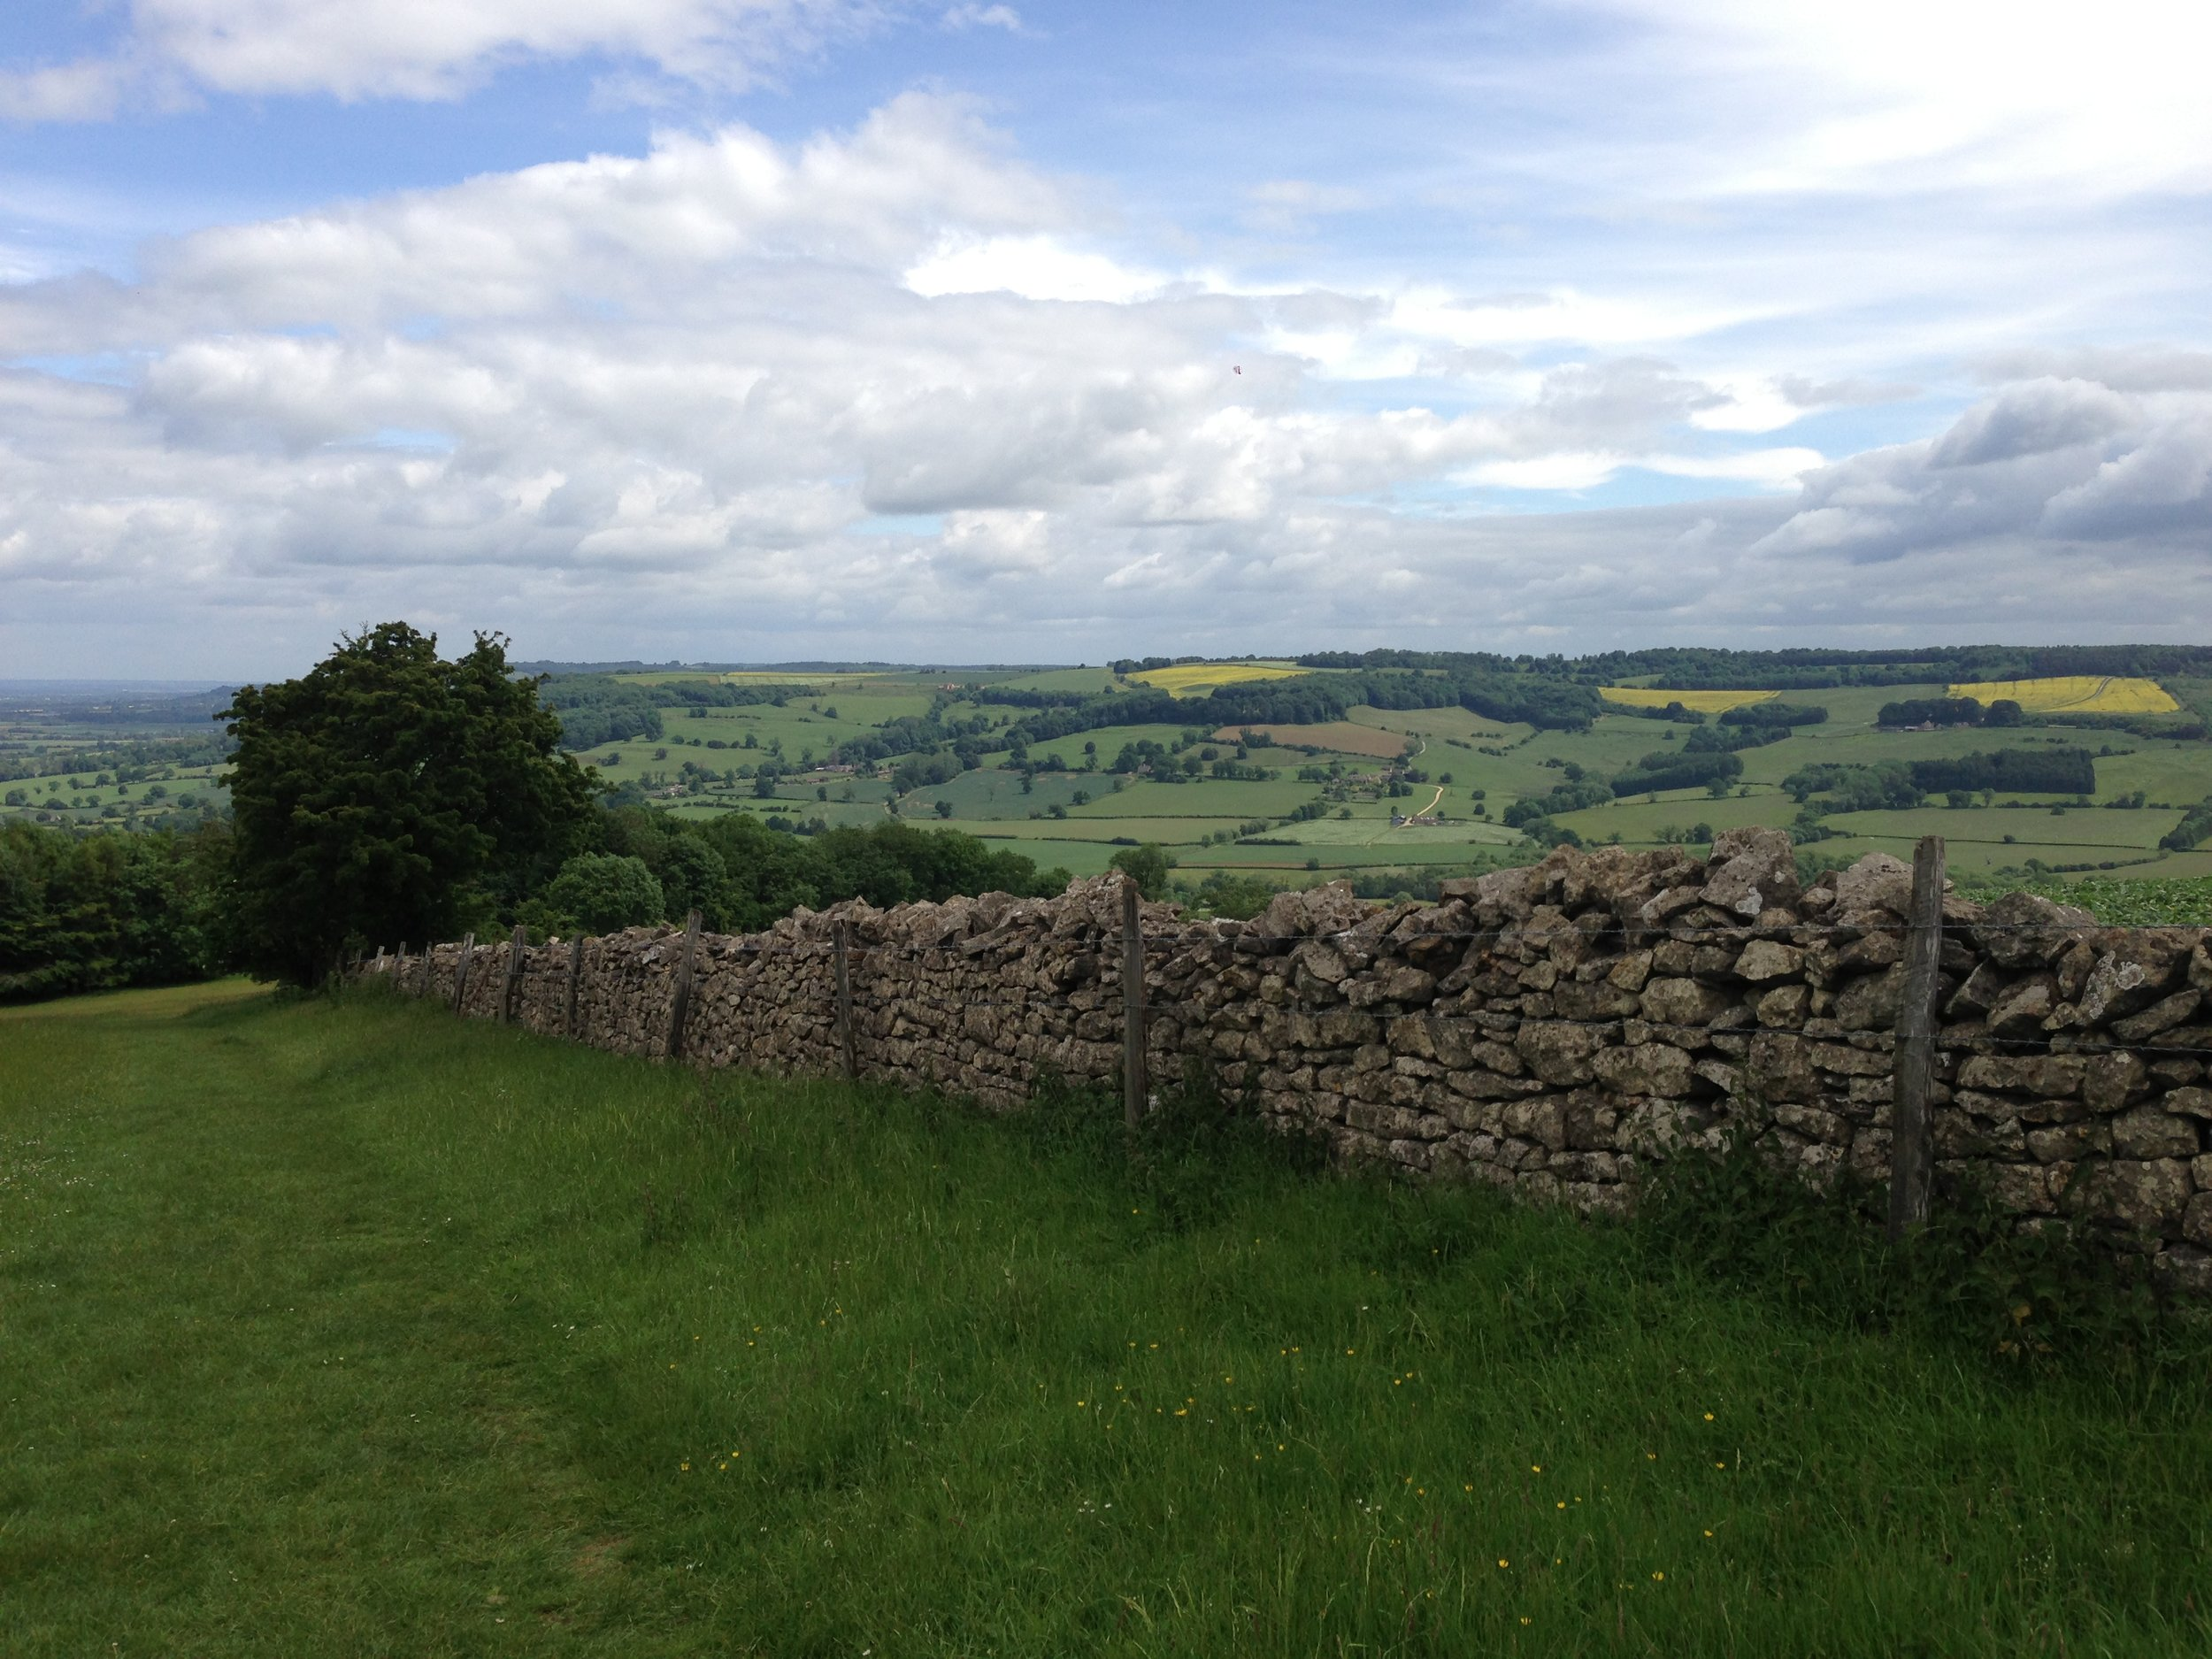 Up on the Cotswold Way, above Winchcombe